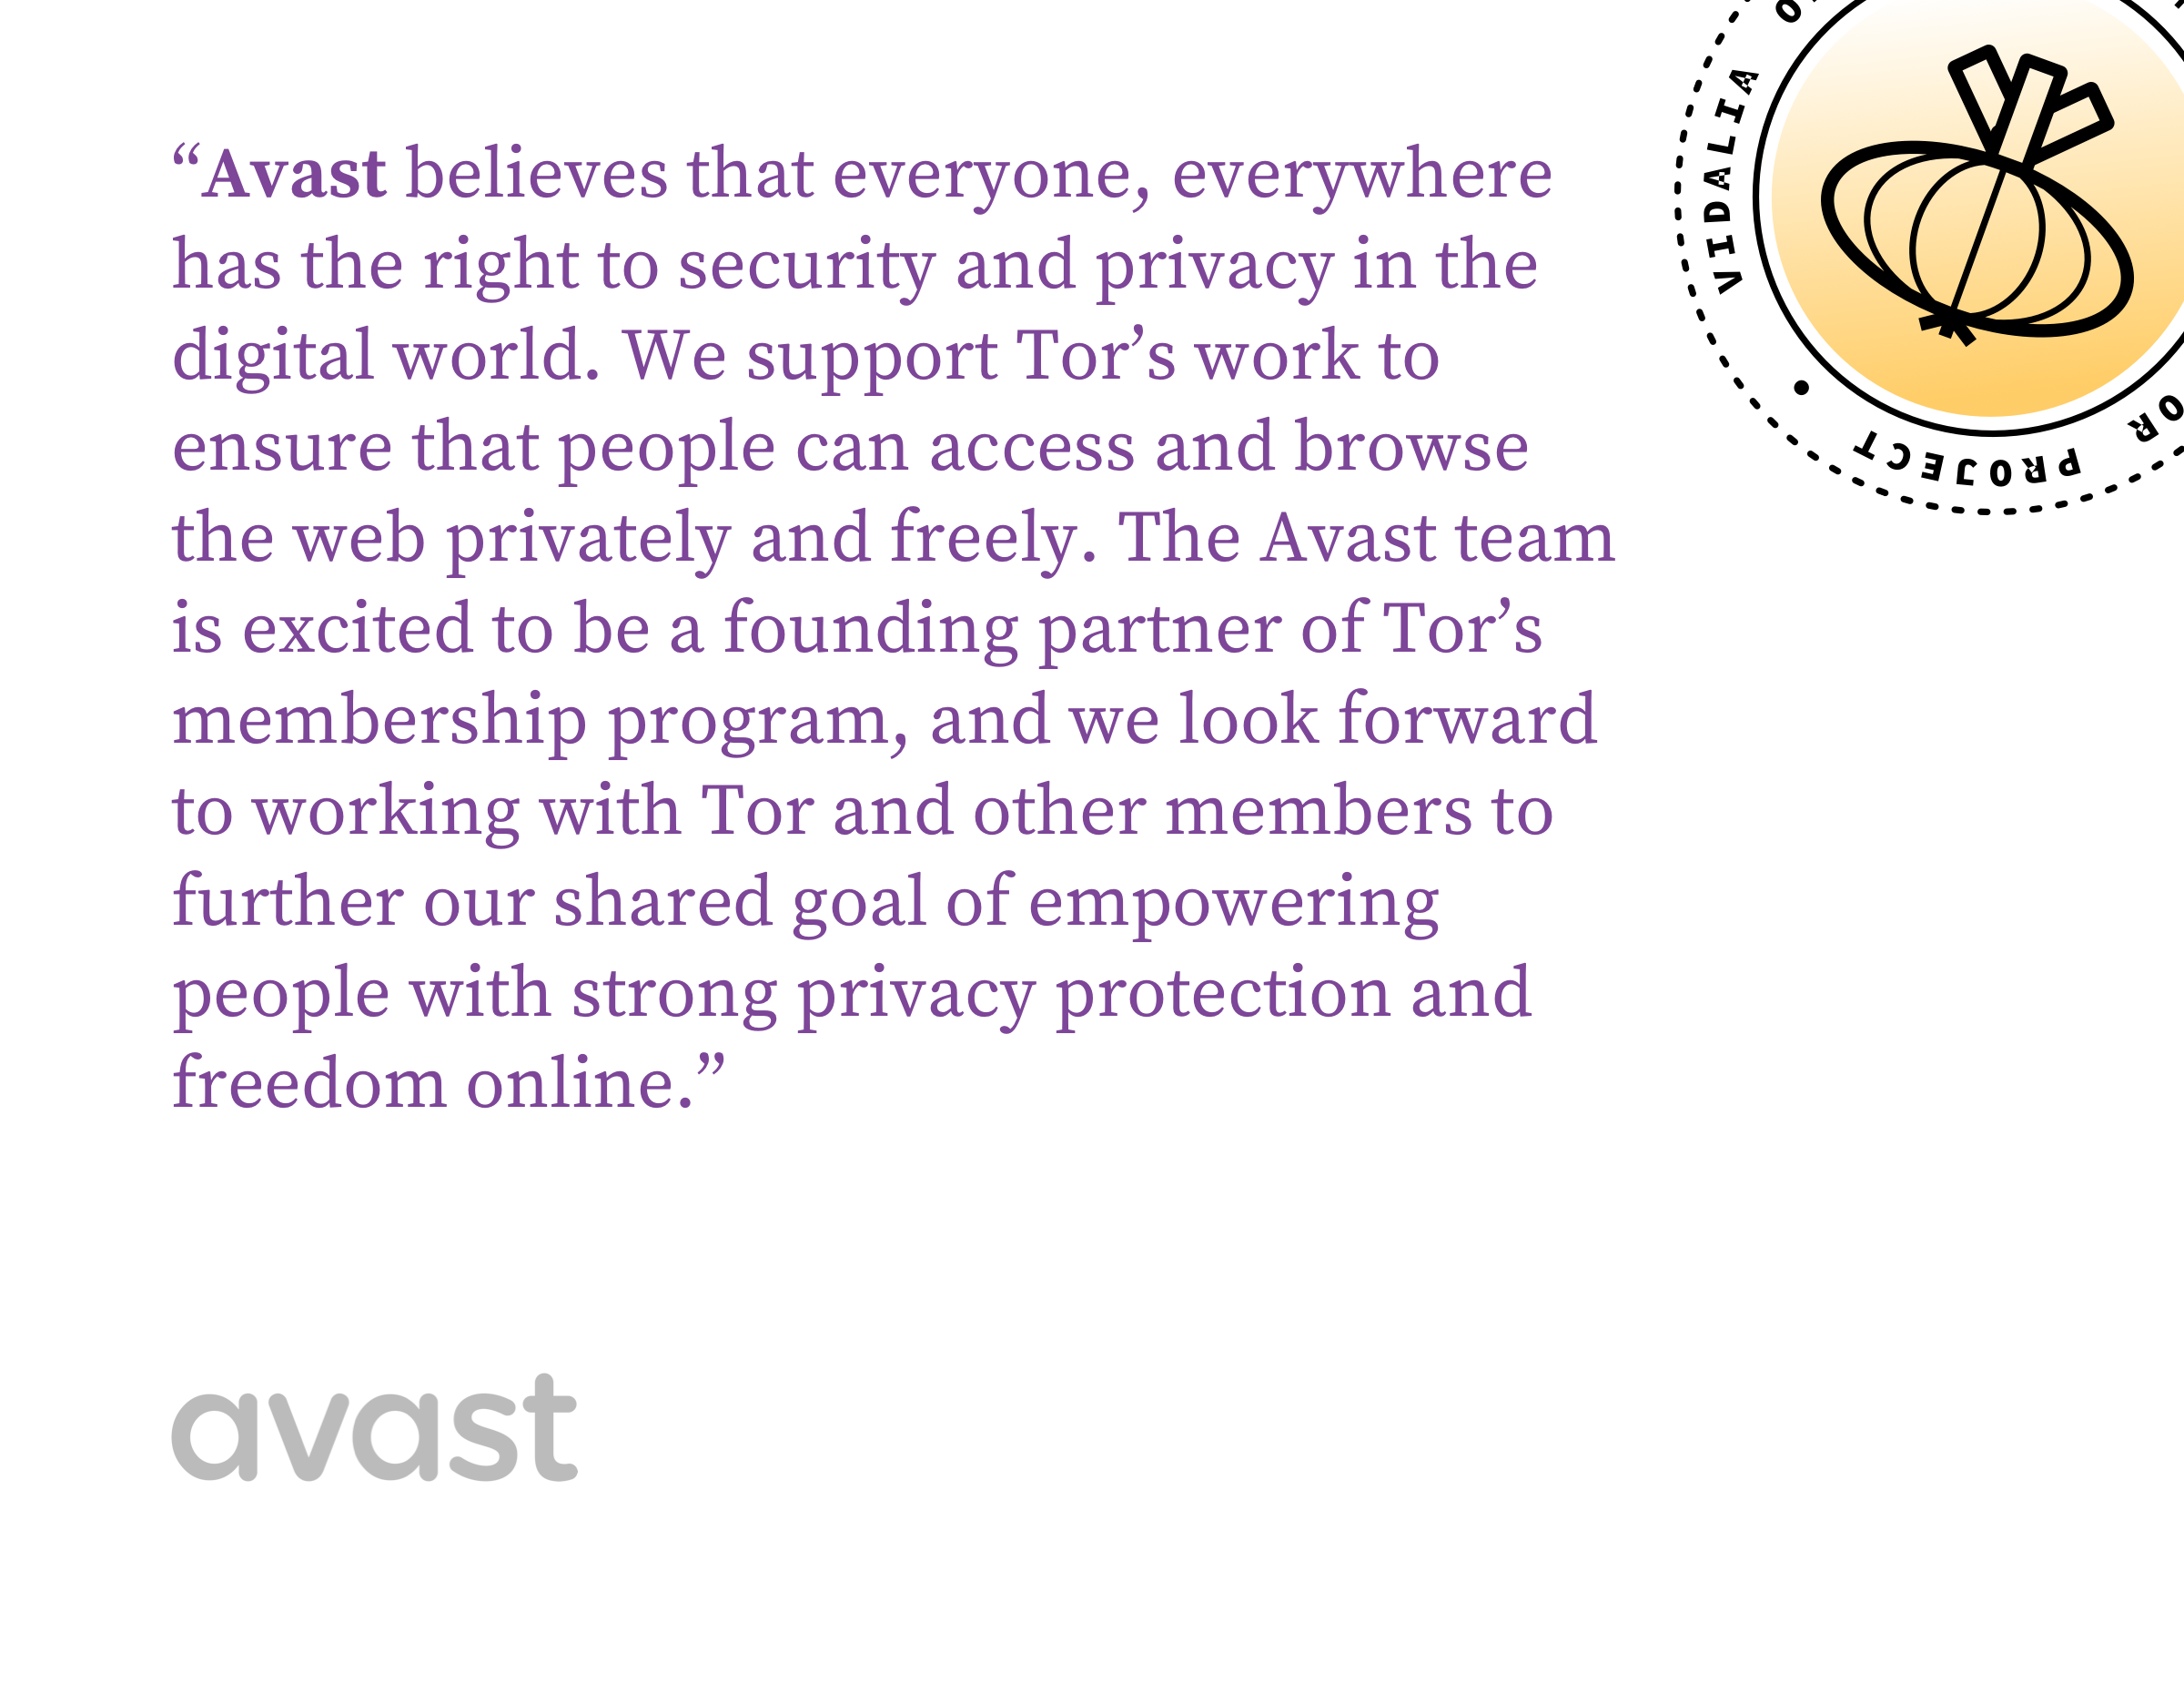 Avast believes that everyone, everywhere has the right to security and privacy in the digital world. We support Tor's work to ensure that people can access and browse the web privately and freely. The Avast team is excited to be a founding partner of Tor's membership program, and we look forward to working with Tor and other members to further our shared goal of empowering people with strong privacy protection and freedom online.